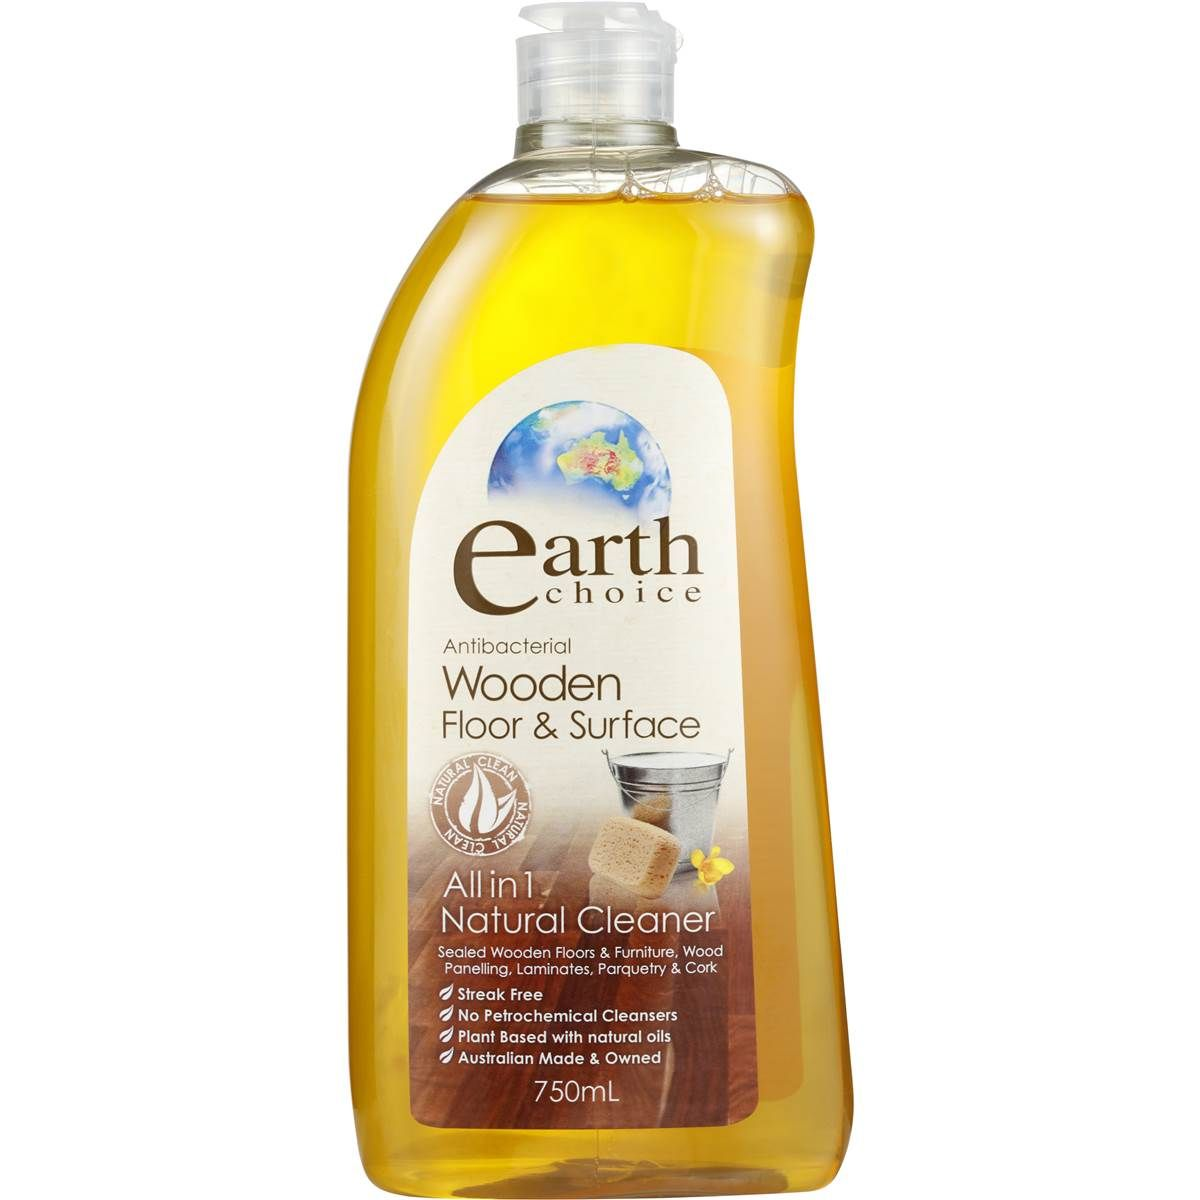 Earth Choice Floor Cleaner Wooden Surface Image Choices Flooring